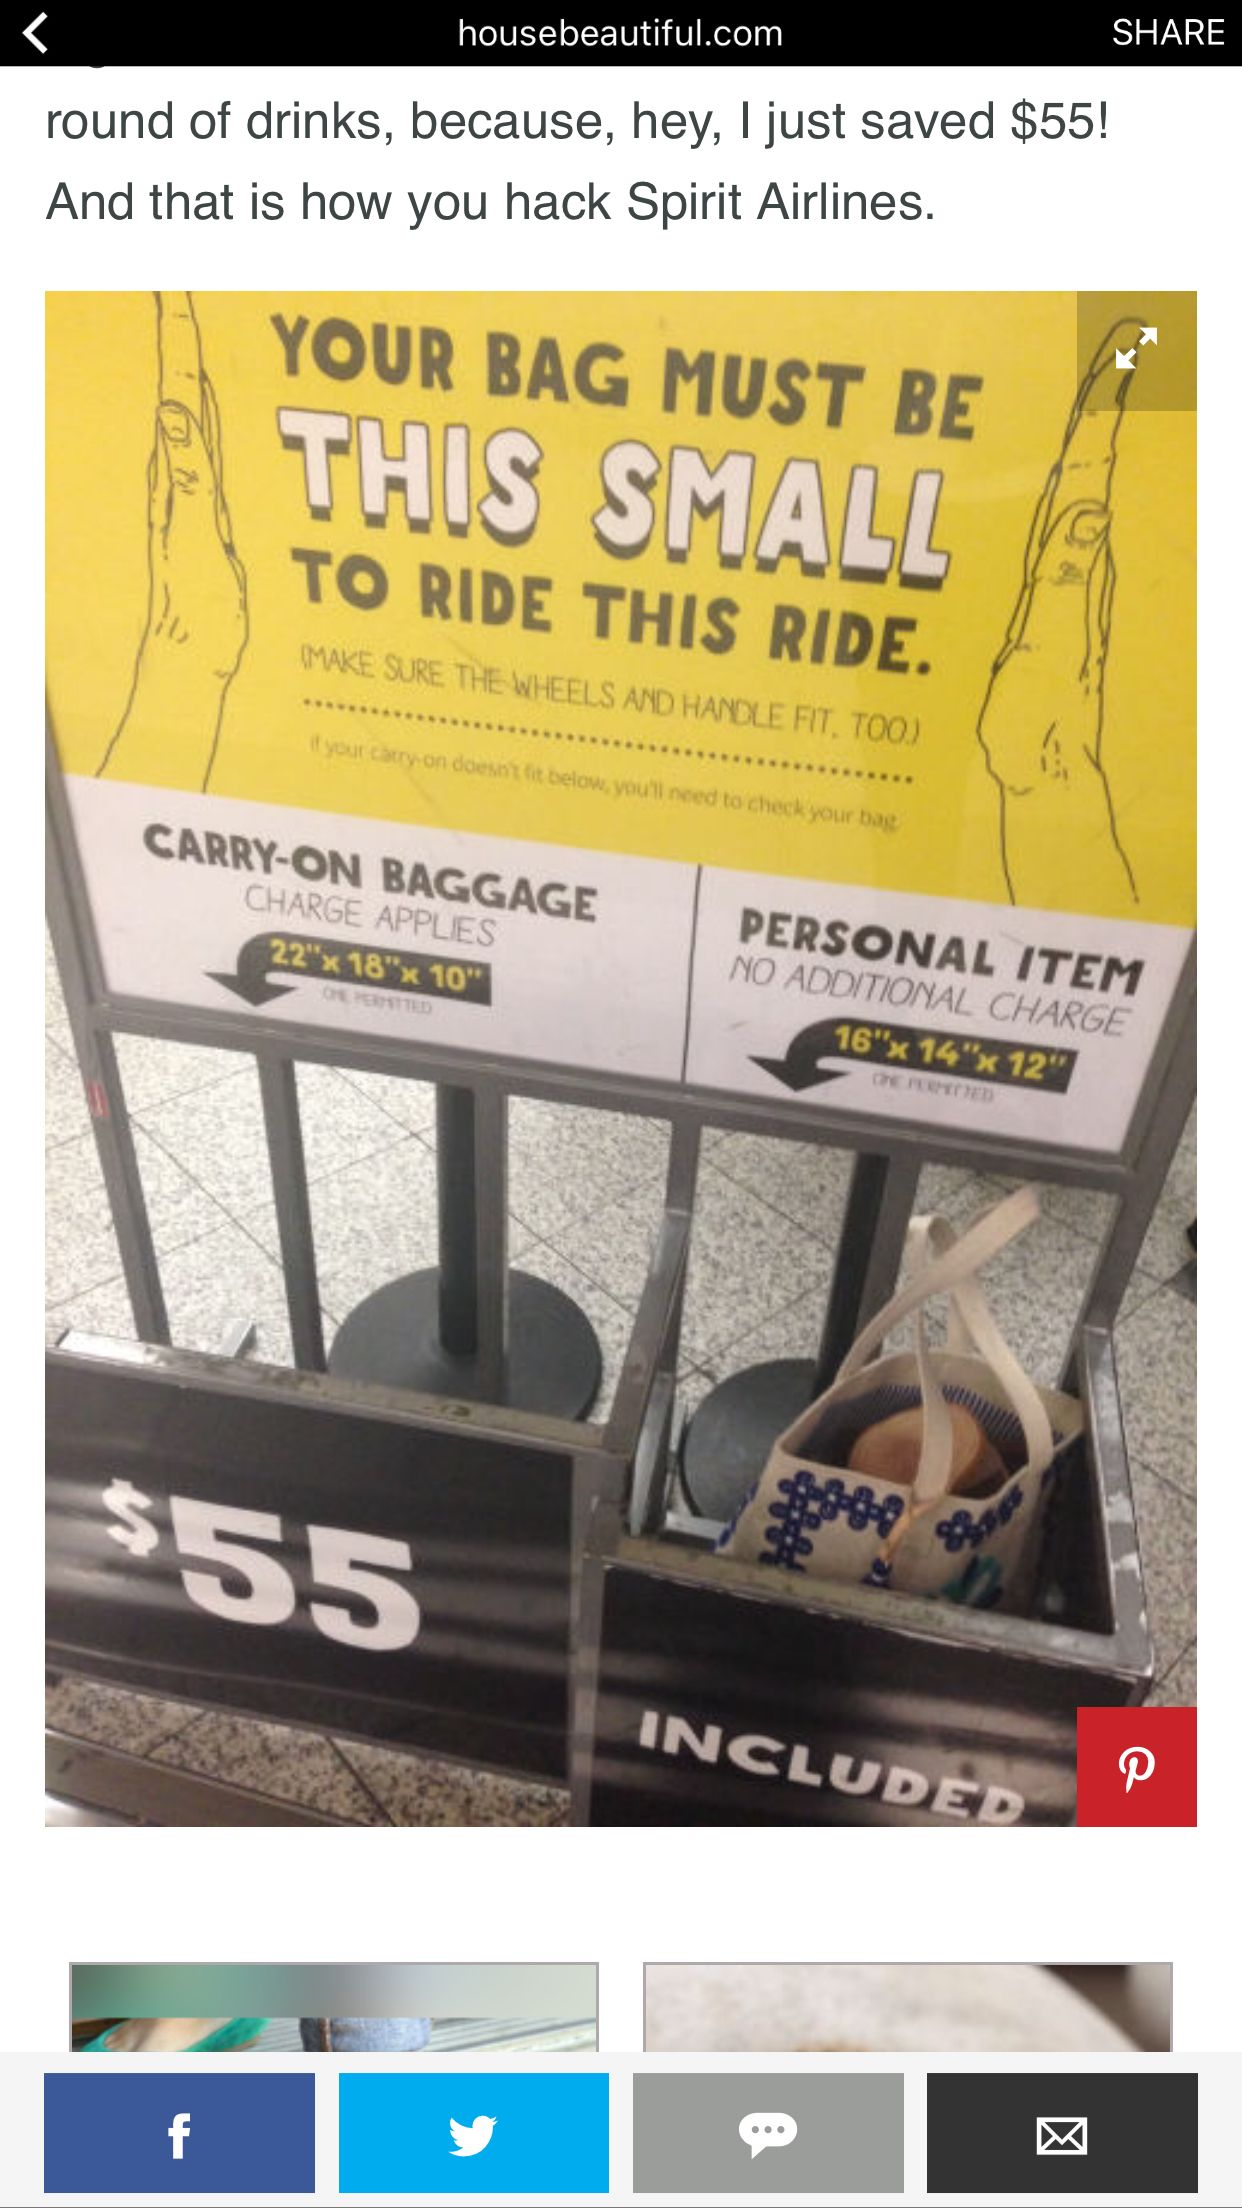 Spirit airlines bad guides spirit airlines packing help